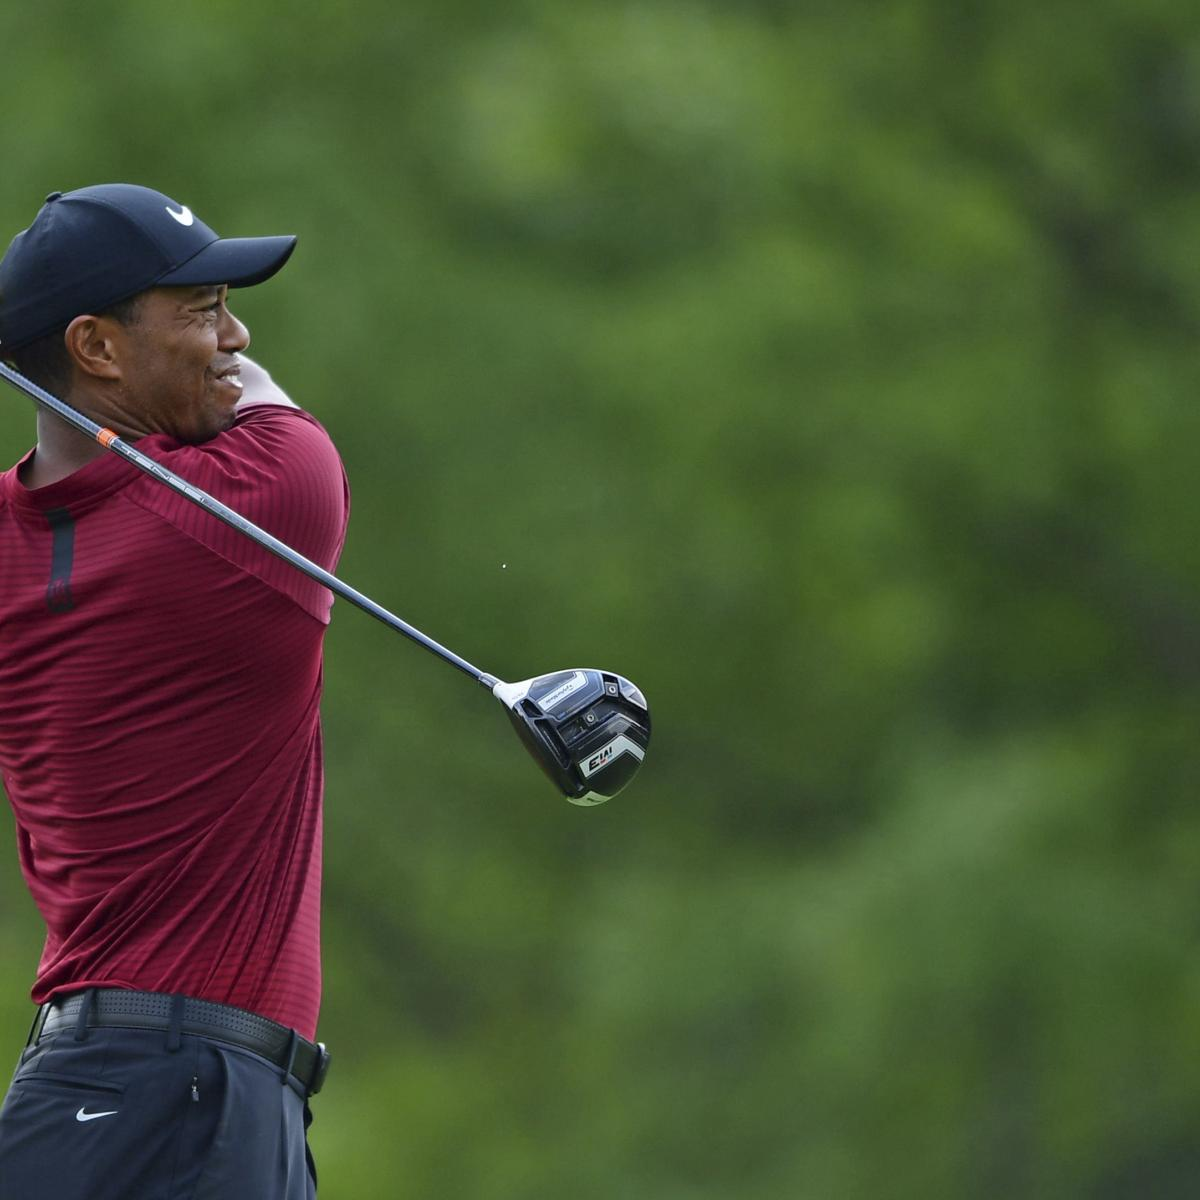 PGA Championship 2018: Start Time, Live Stream, TV Schedule, Odds and Picks